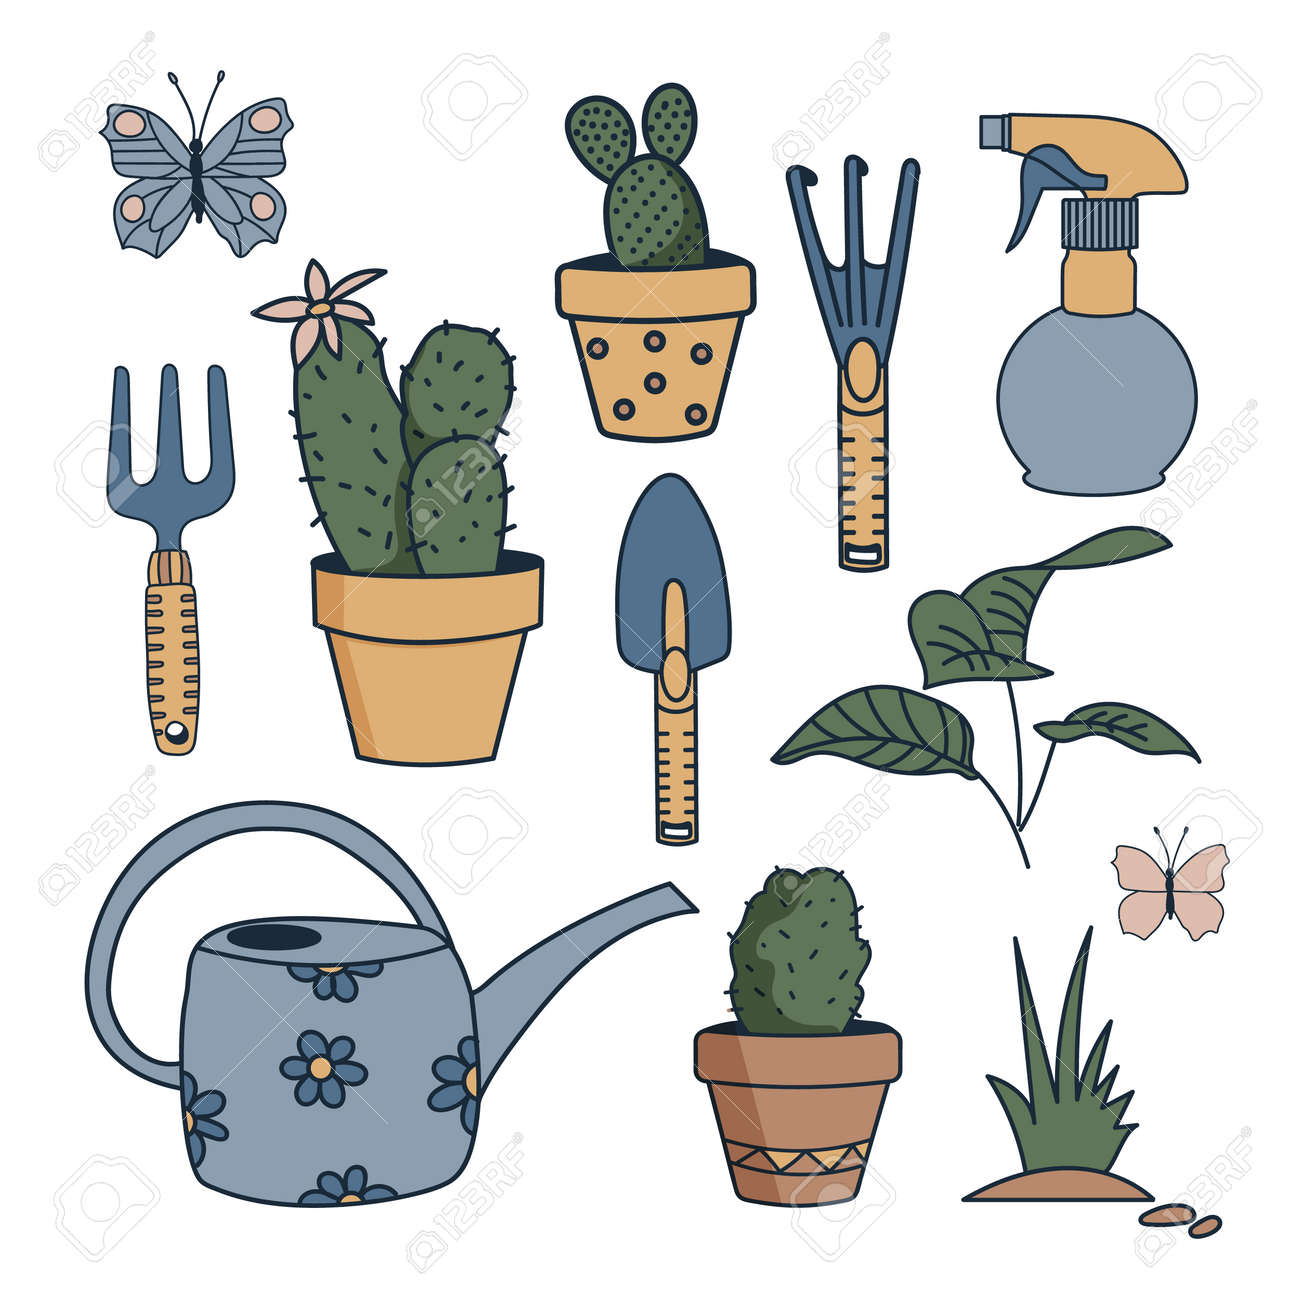 Vector set of garden tools isolated on white background. - 169107767